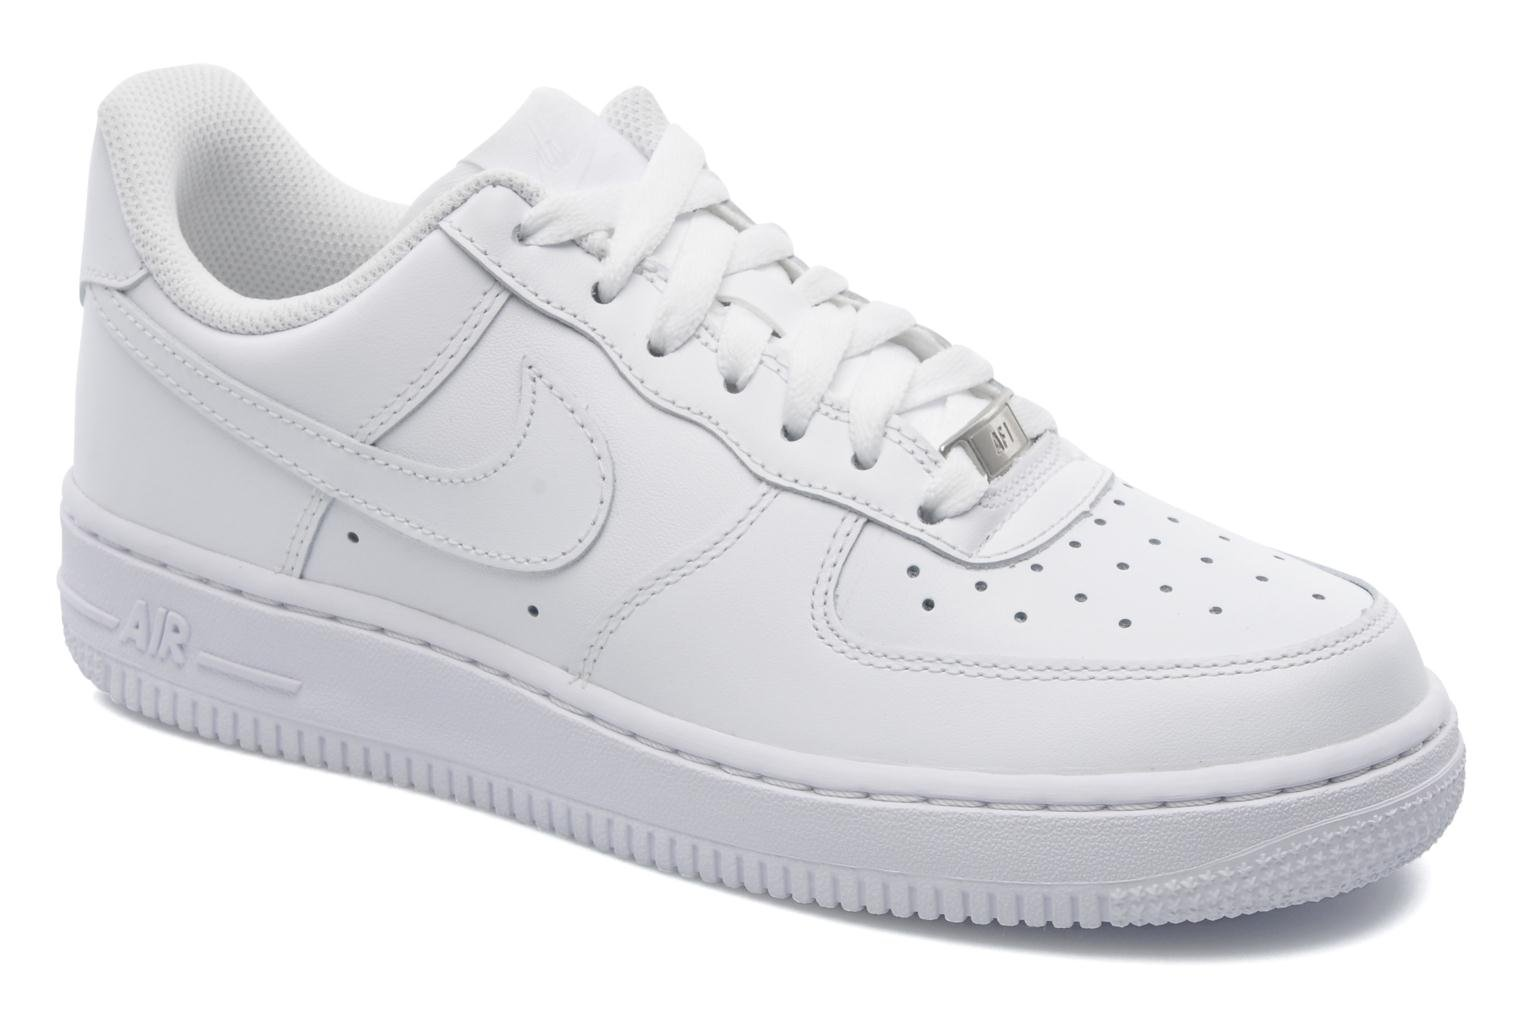 super popular b7b64 e0524 nike air force 1 blancos